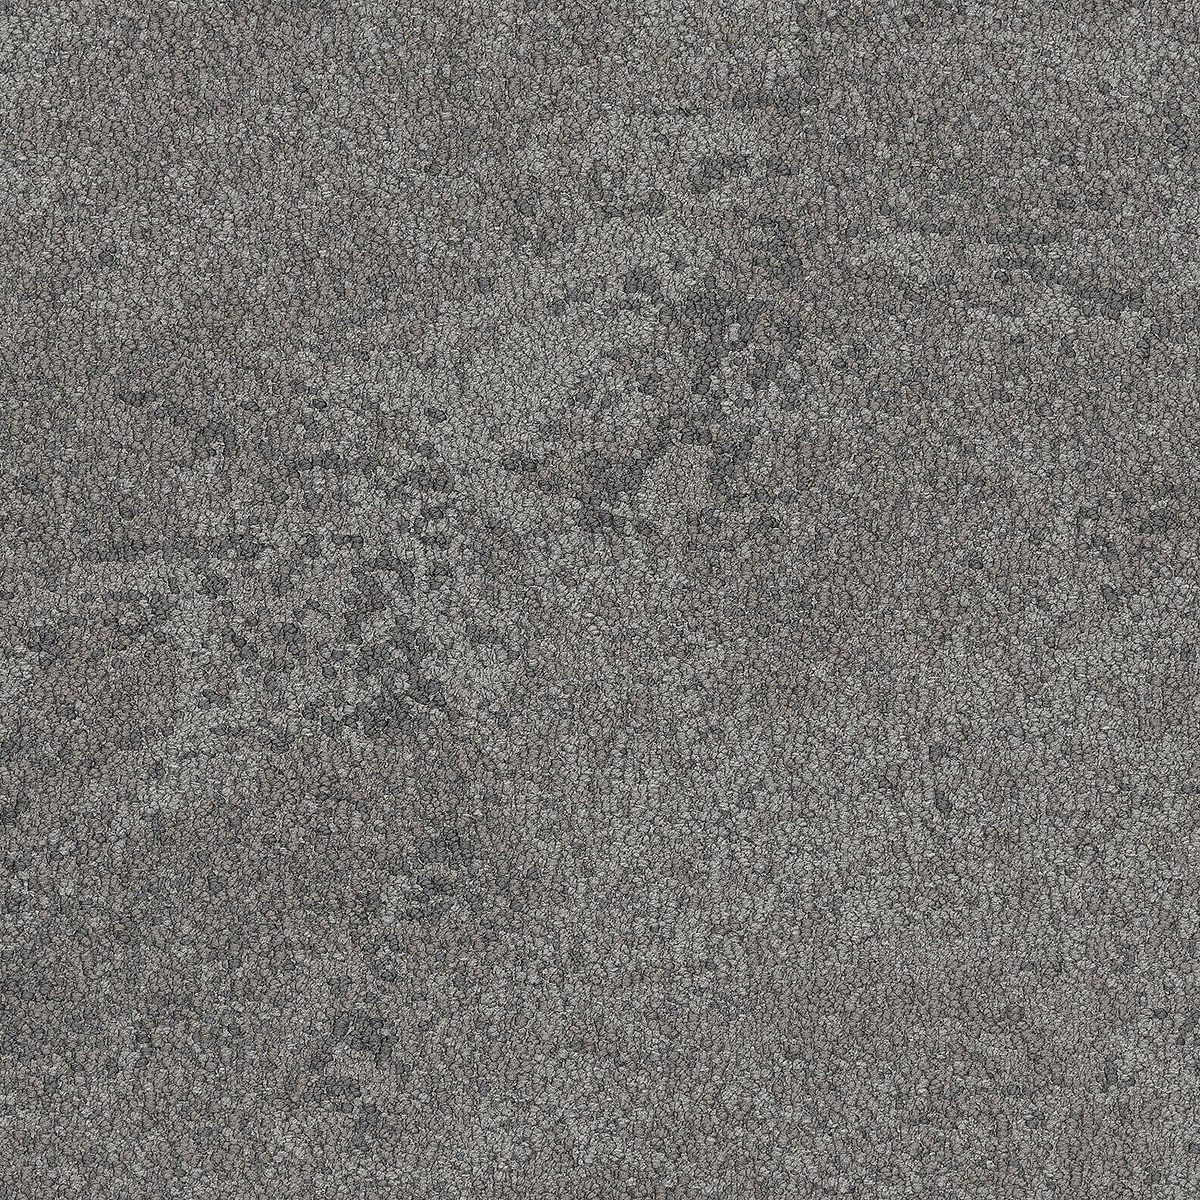 Looking for Interface carpet tiles? Urban Retreat 102 in the color Stone is an excellent choice. View this and other carpet tiles in our webshop.